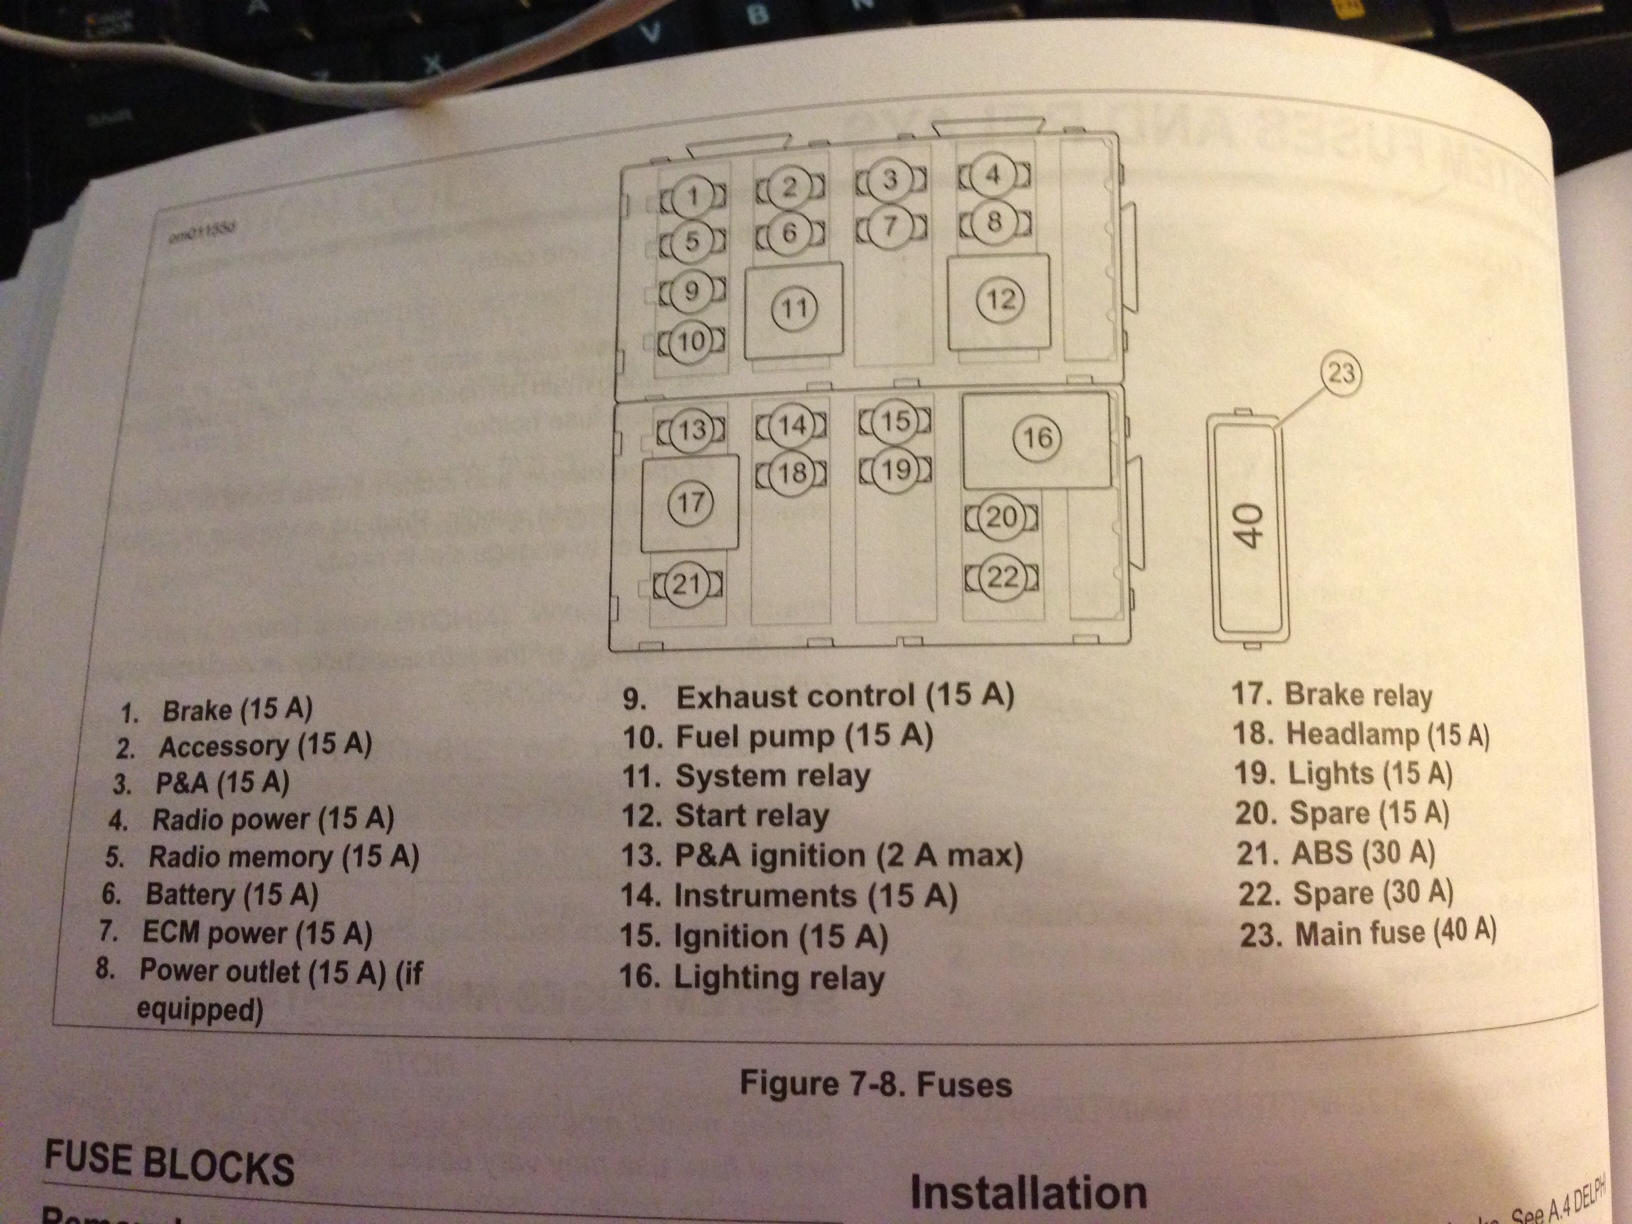 hight resolution of 2007 street glide fuse box wiring diagram 2007 street glide fuse box